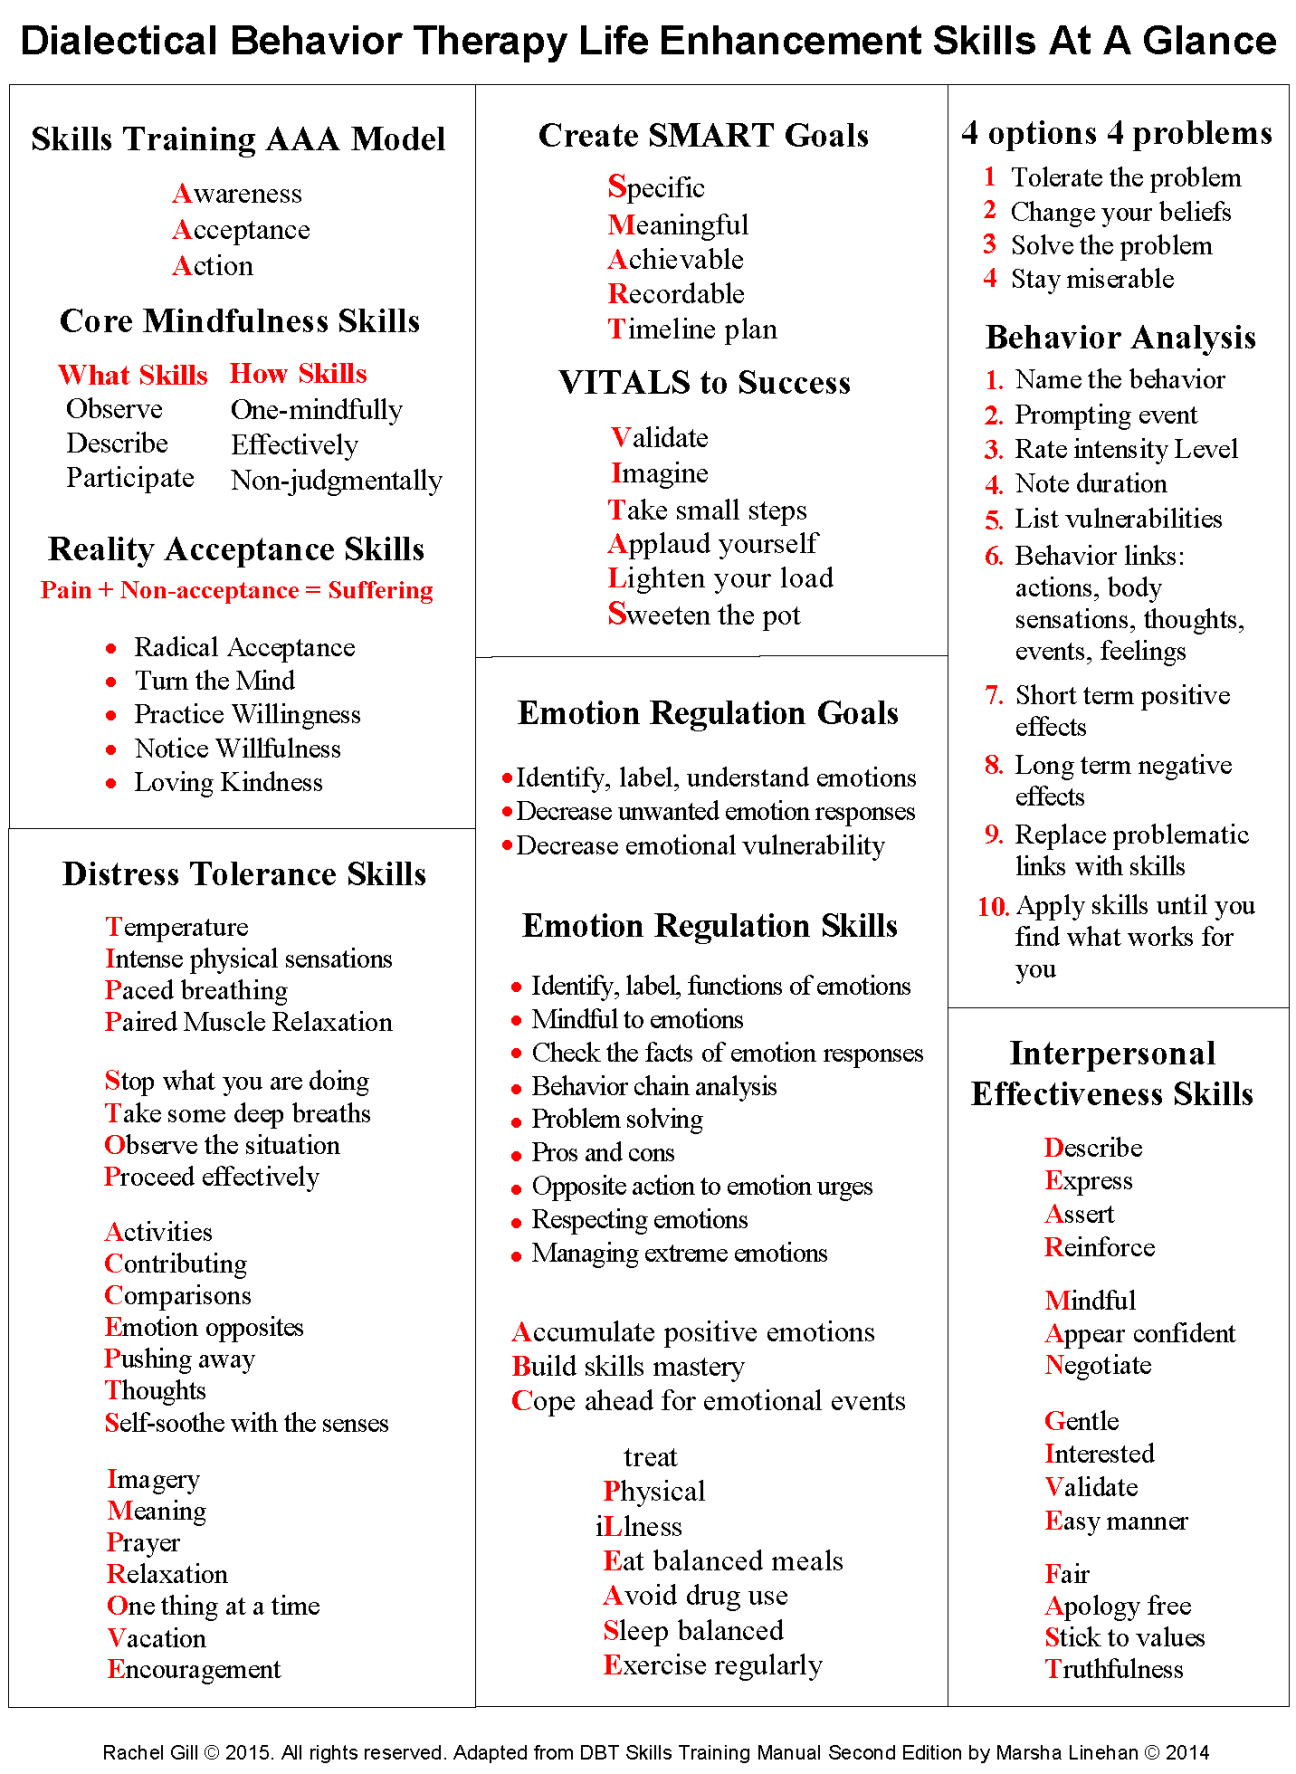 Dbt Handouts & Worksheets | Dbt Peer Connections | Self Study - Free | Free Printable Coping Skills Worksheets For Adults